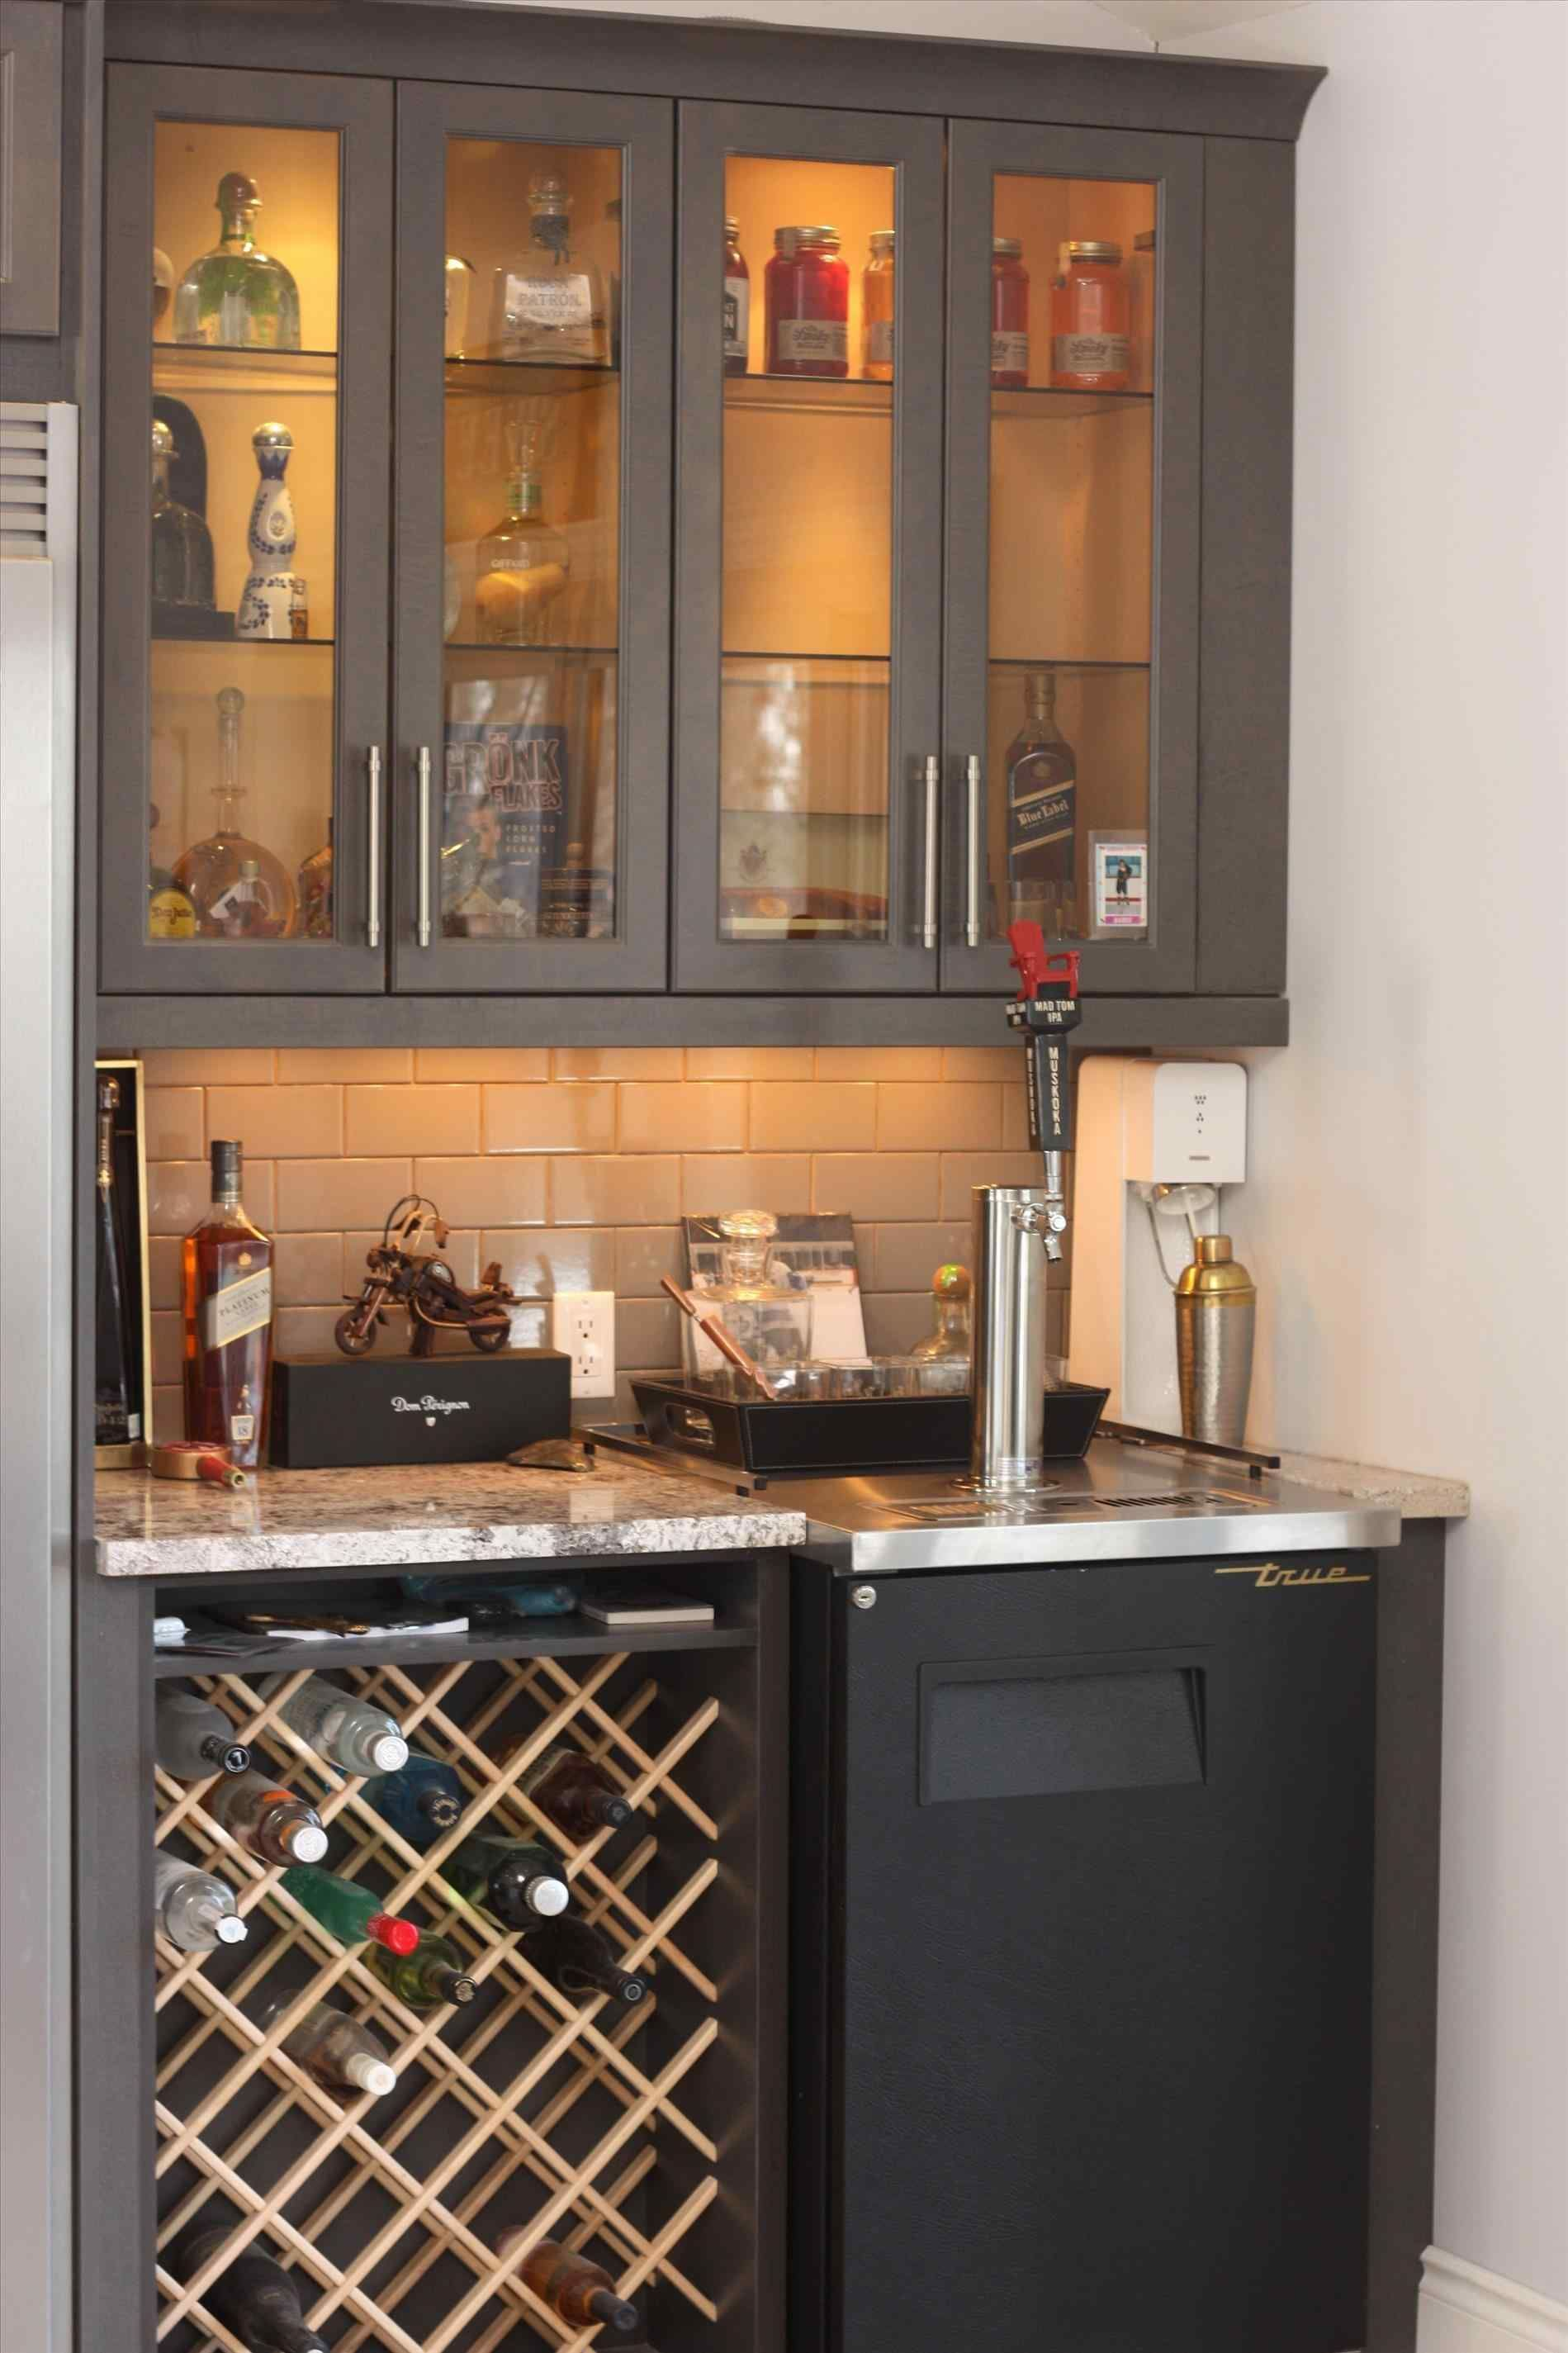 Brilliant 20 Stunning Home Dry Bar Designs And Decor Ideas Https Breakpr Com Top Home Dry Bar Ideas Diy Home Bar Bar Furniture Home Bar Decor